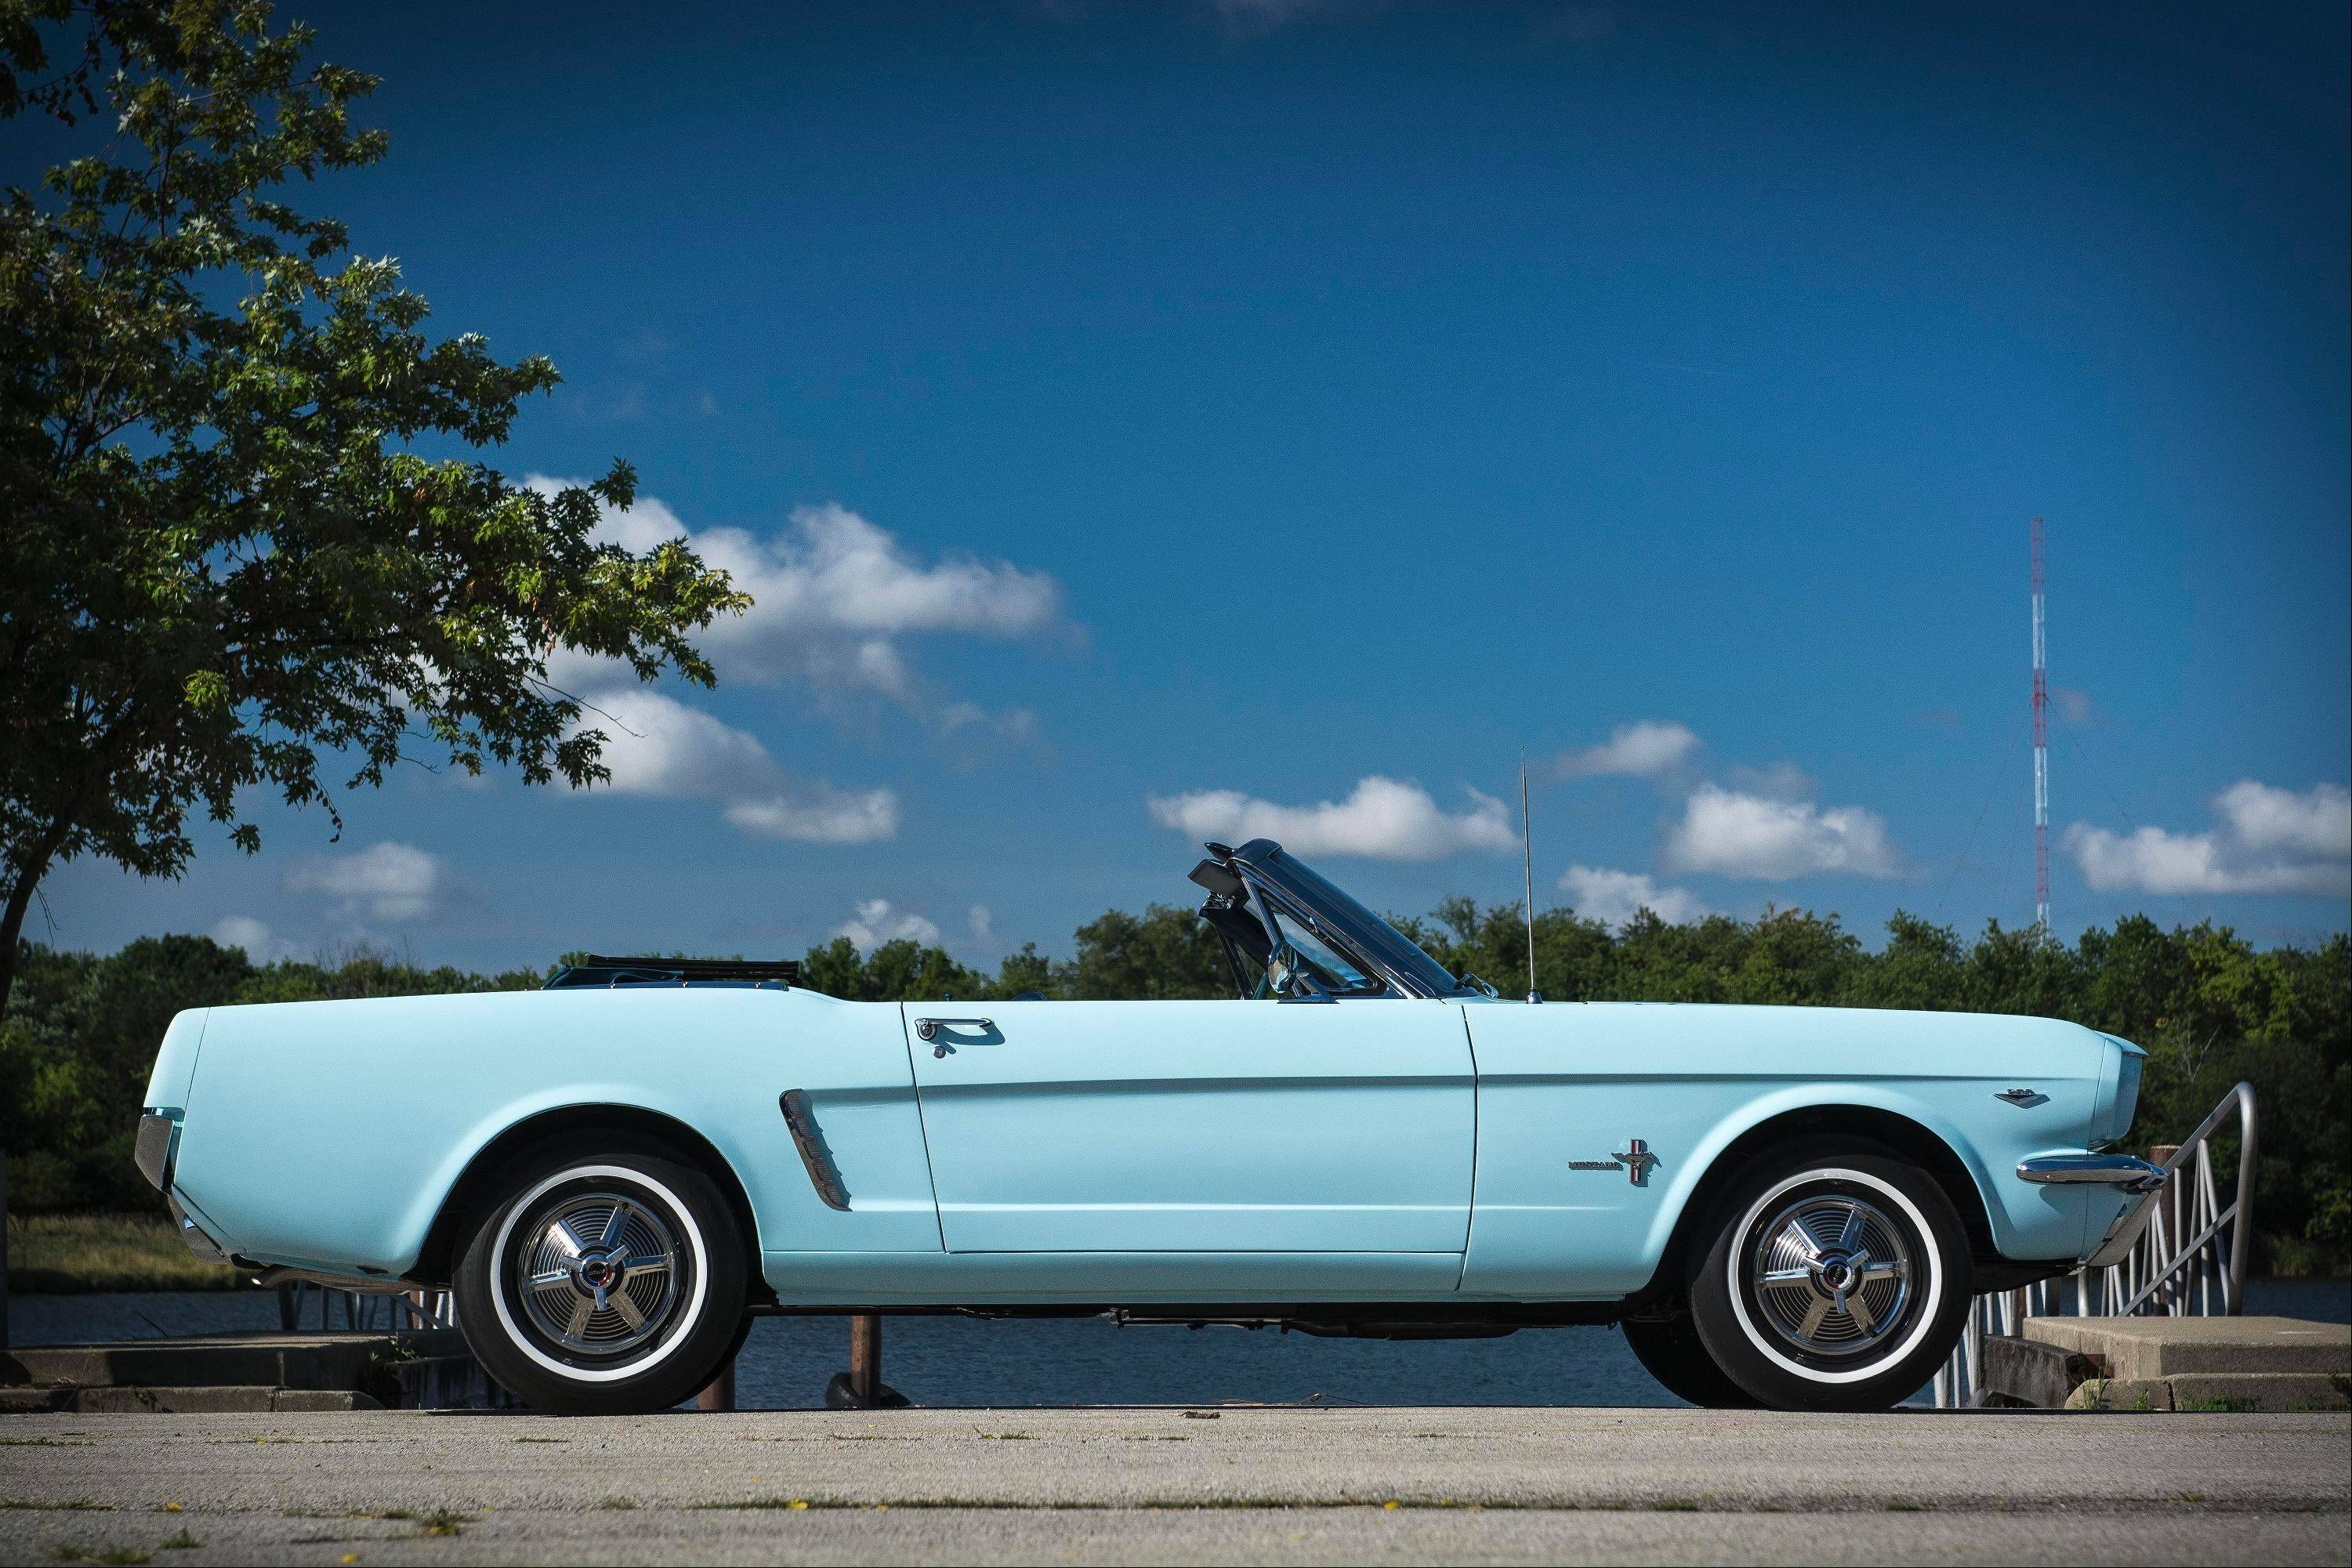 Gail Wise grew up in a family that loved convertibles. She and her dad bought this one from Johnson Ford on Cicero Avenue in Chicago.